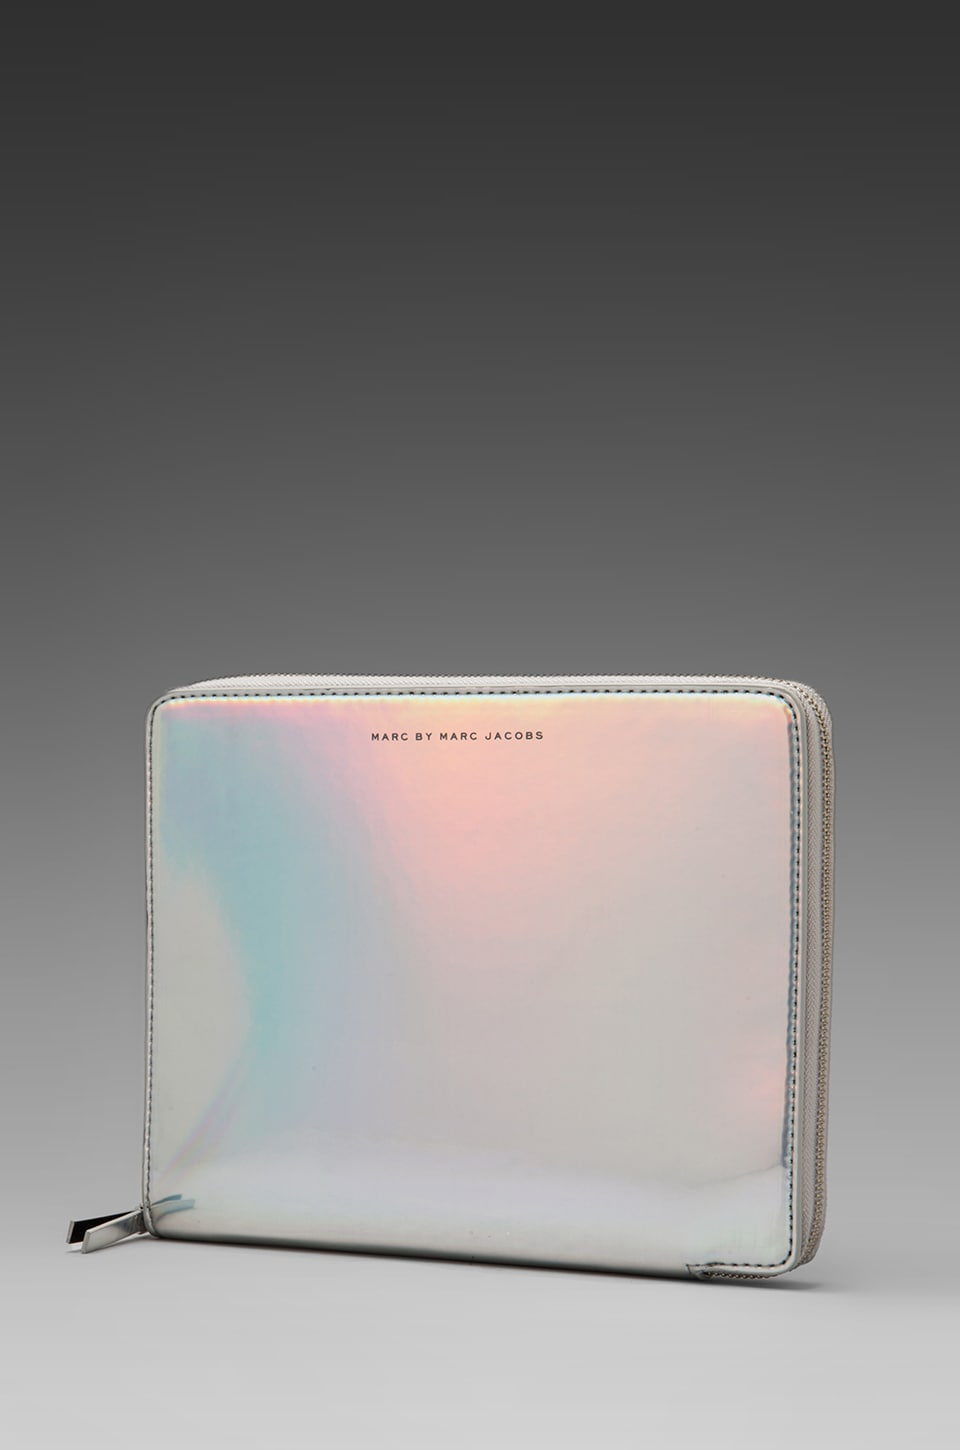 Marc by Marc Jacobs Techno Tablet Book in Light Holographic